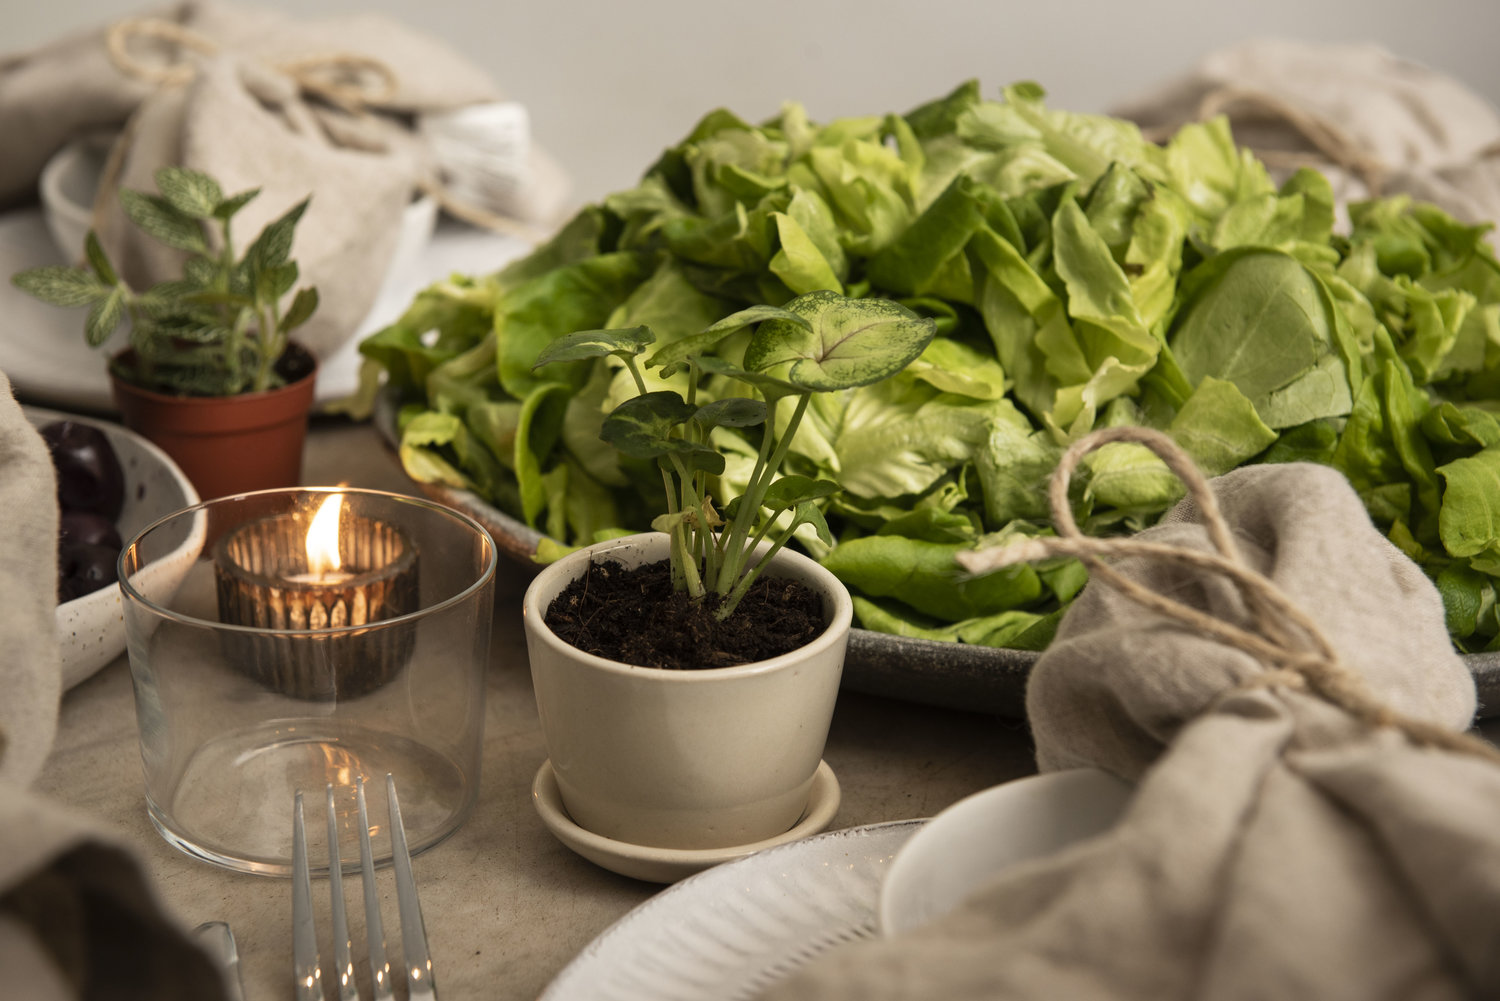 What We Learned at our Food Tabletop & Plant Styling Workshop6